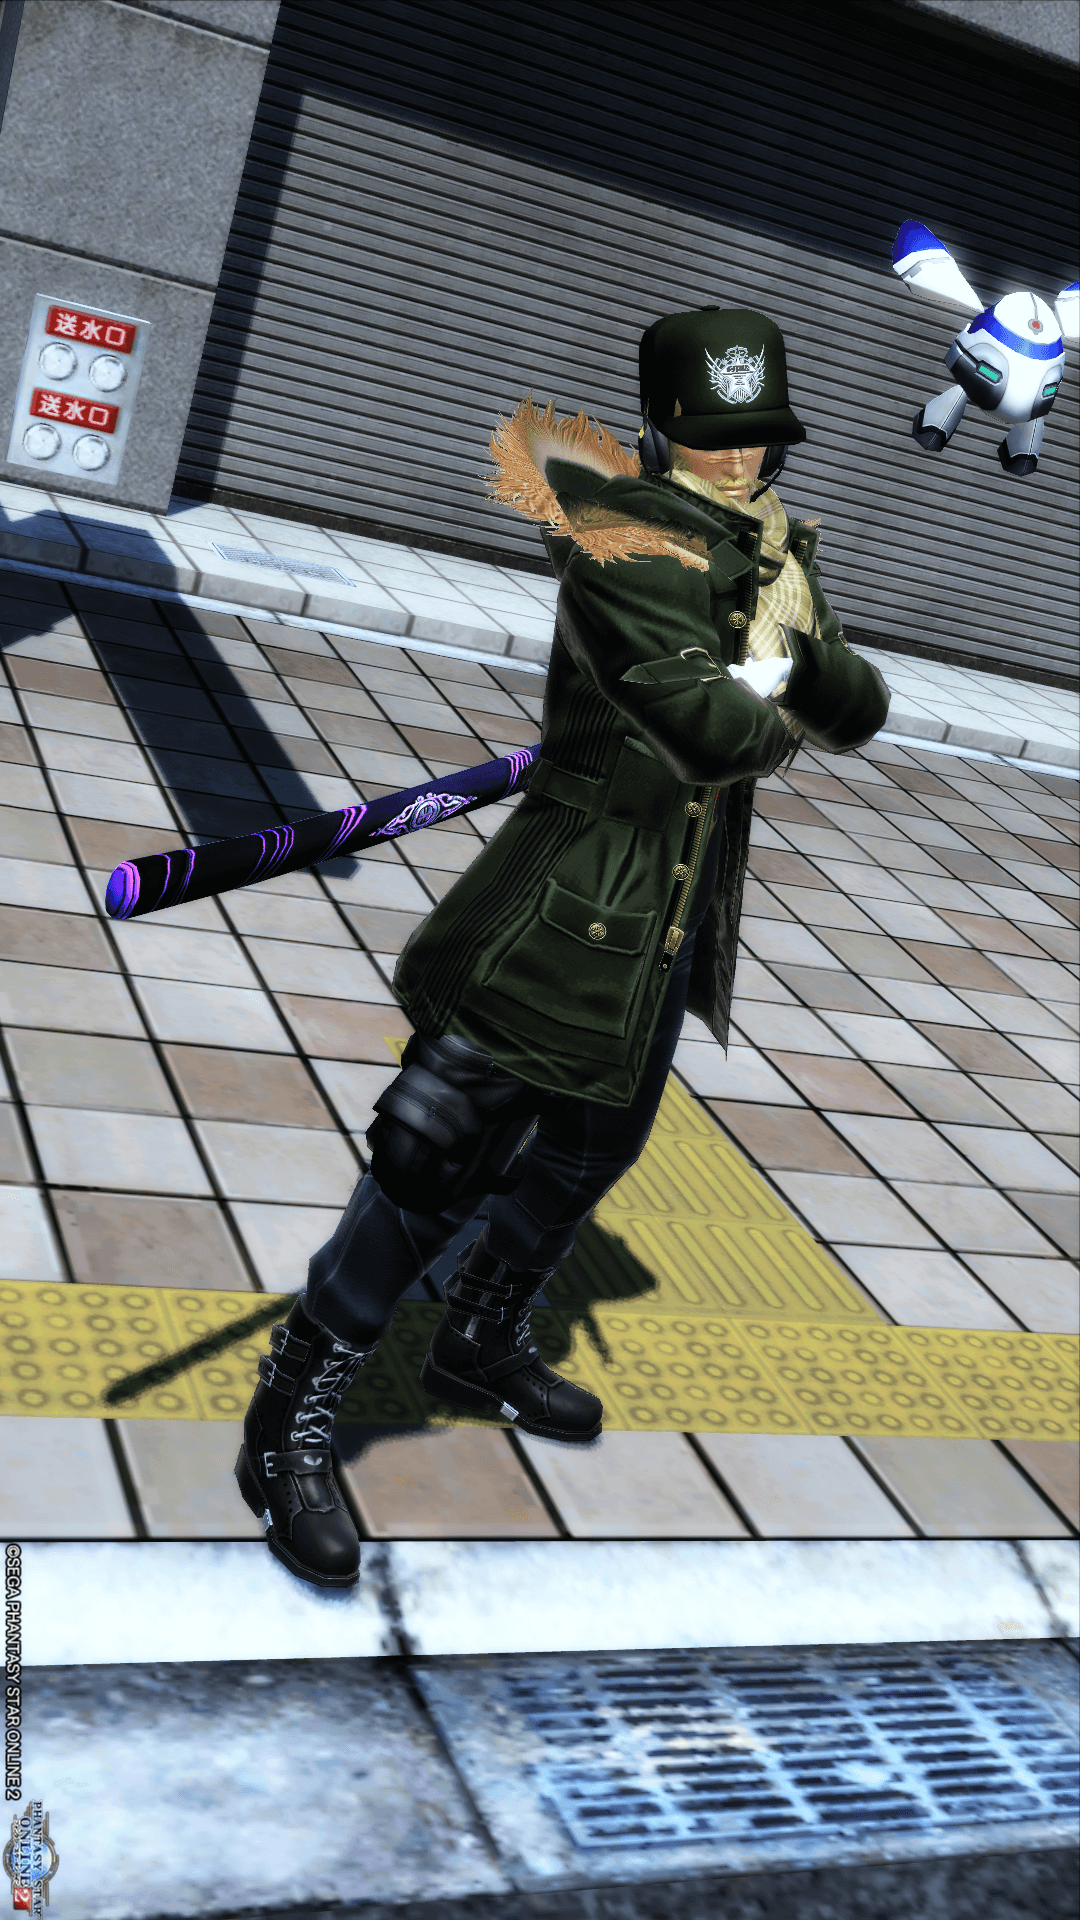 pso20160215_184230_004.png